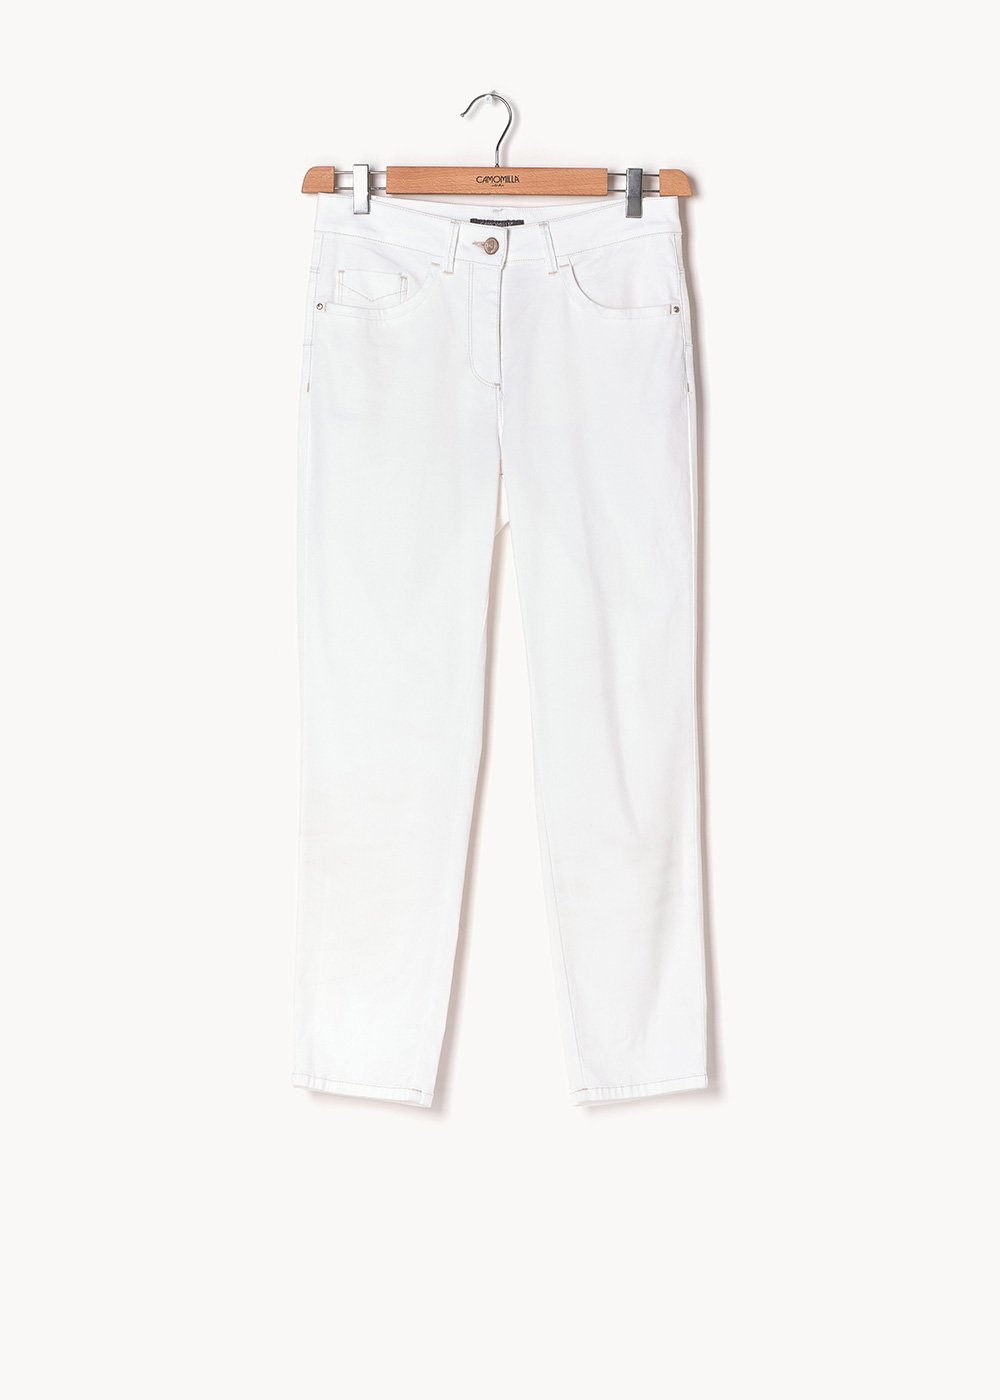 Priamo honeycomb cotton trousers - White - Woman